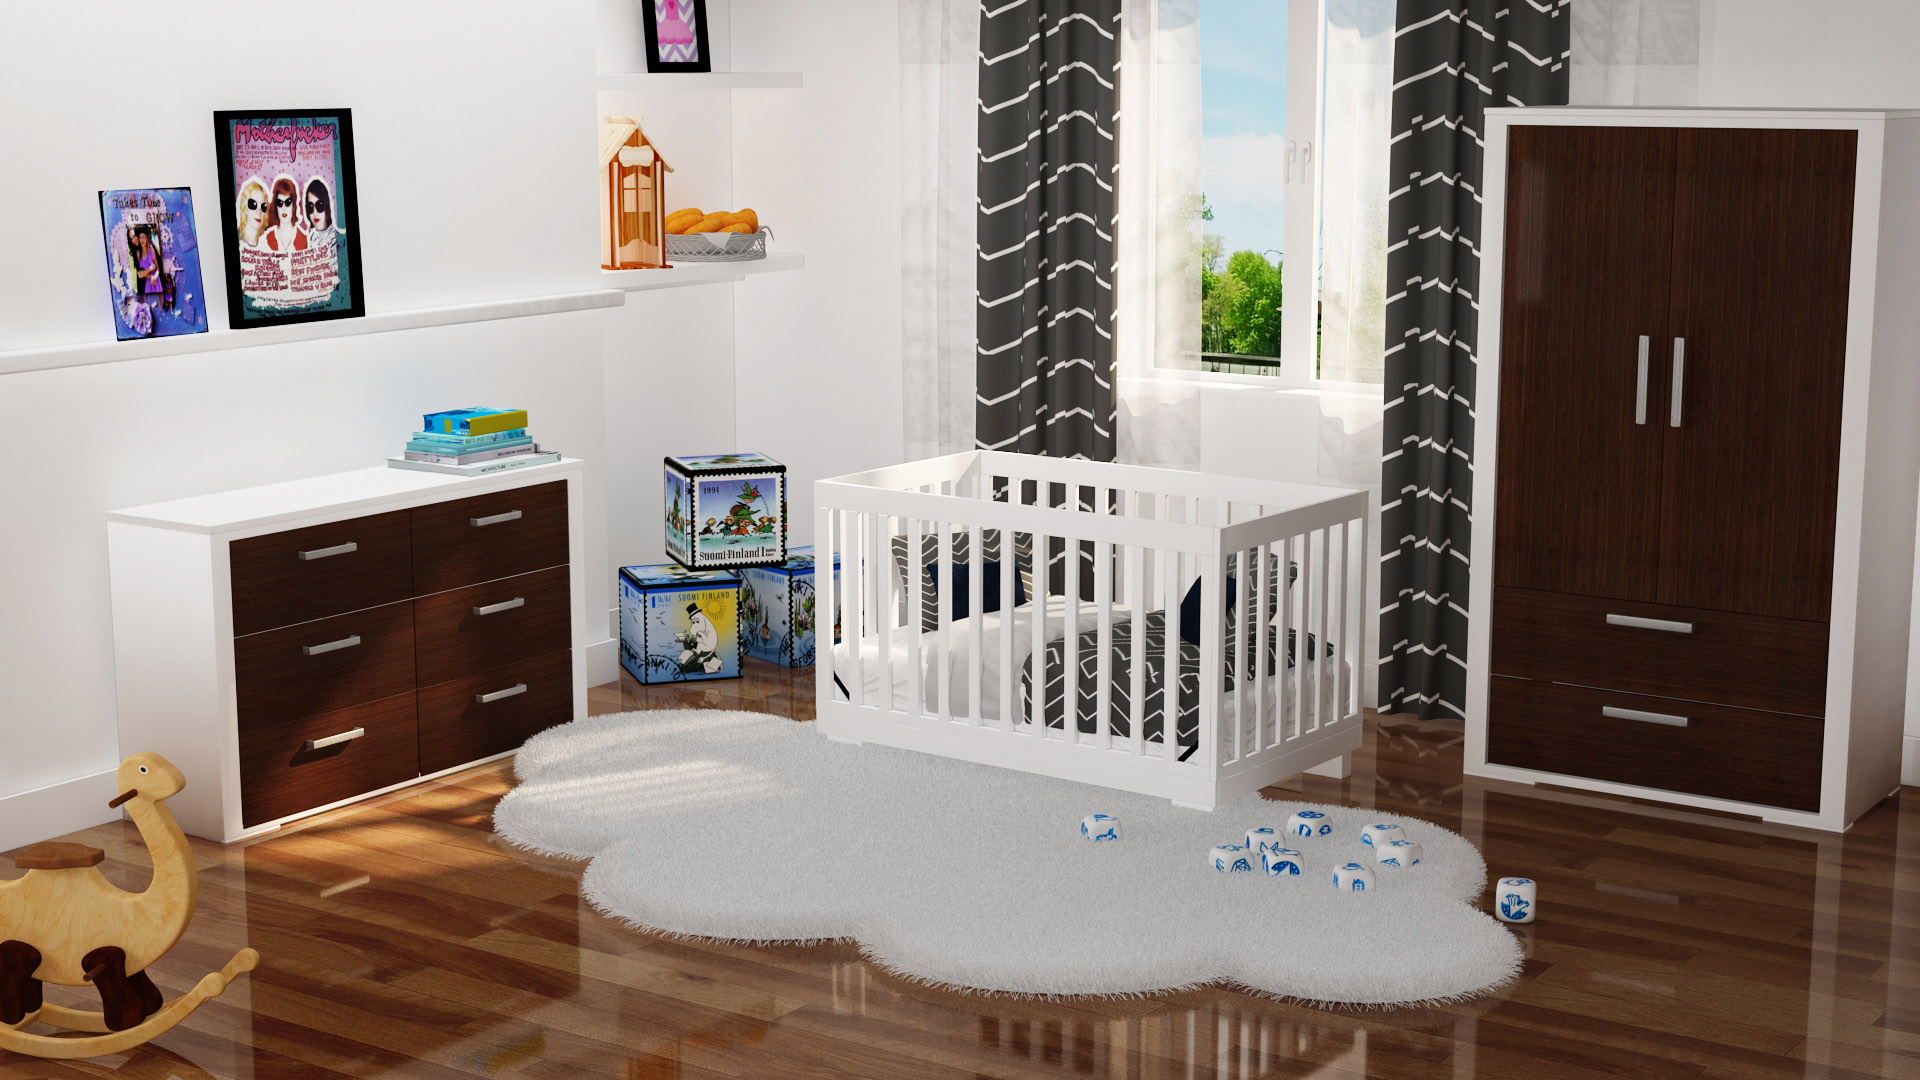 baby room interior visualization